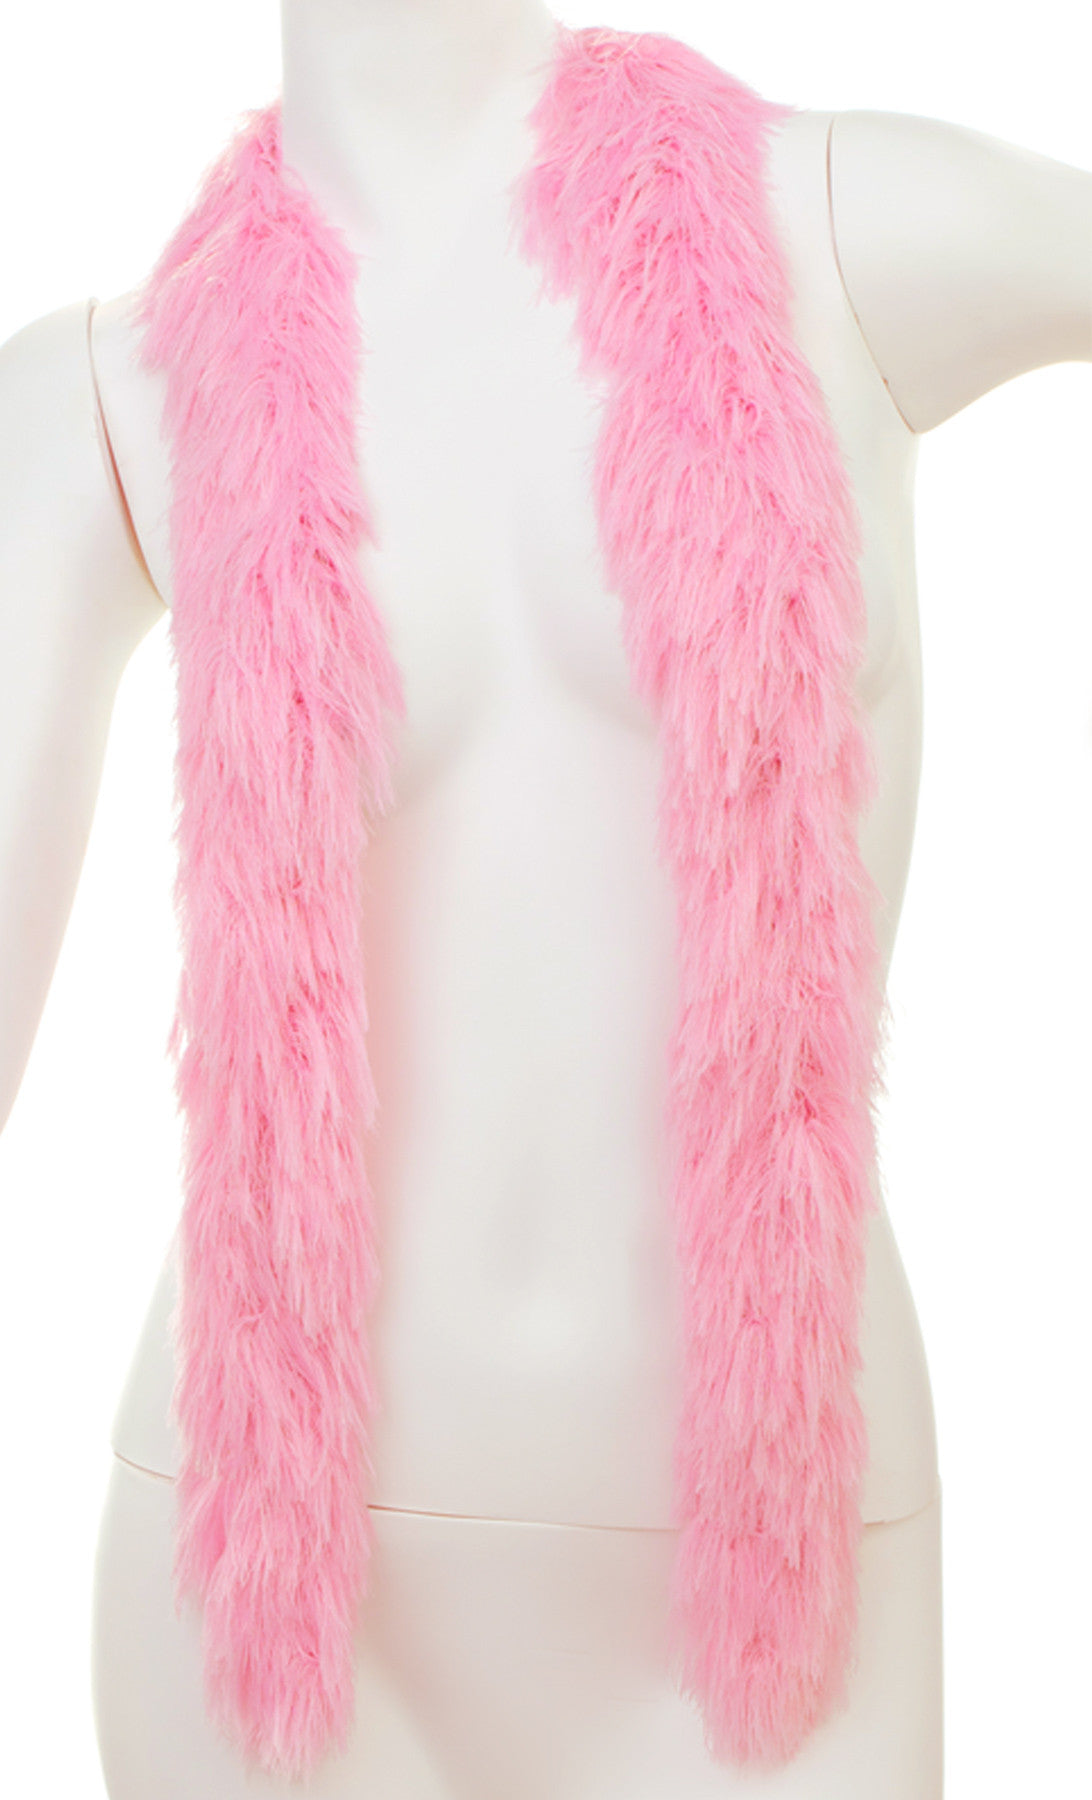 Faux Fur Festival Boa - Soft Pink - Happy Boa: Faux Feather Boa